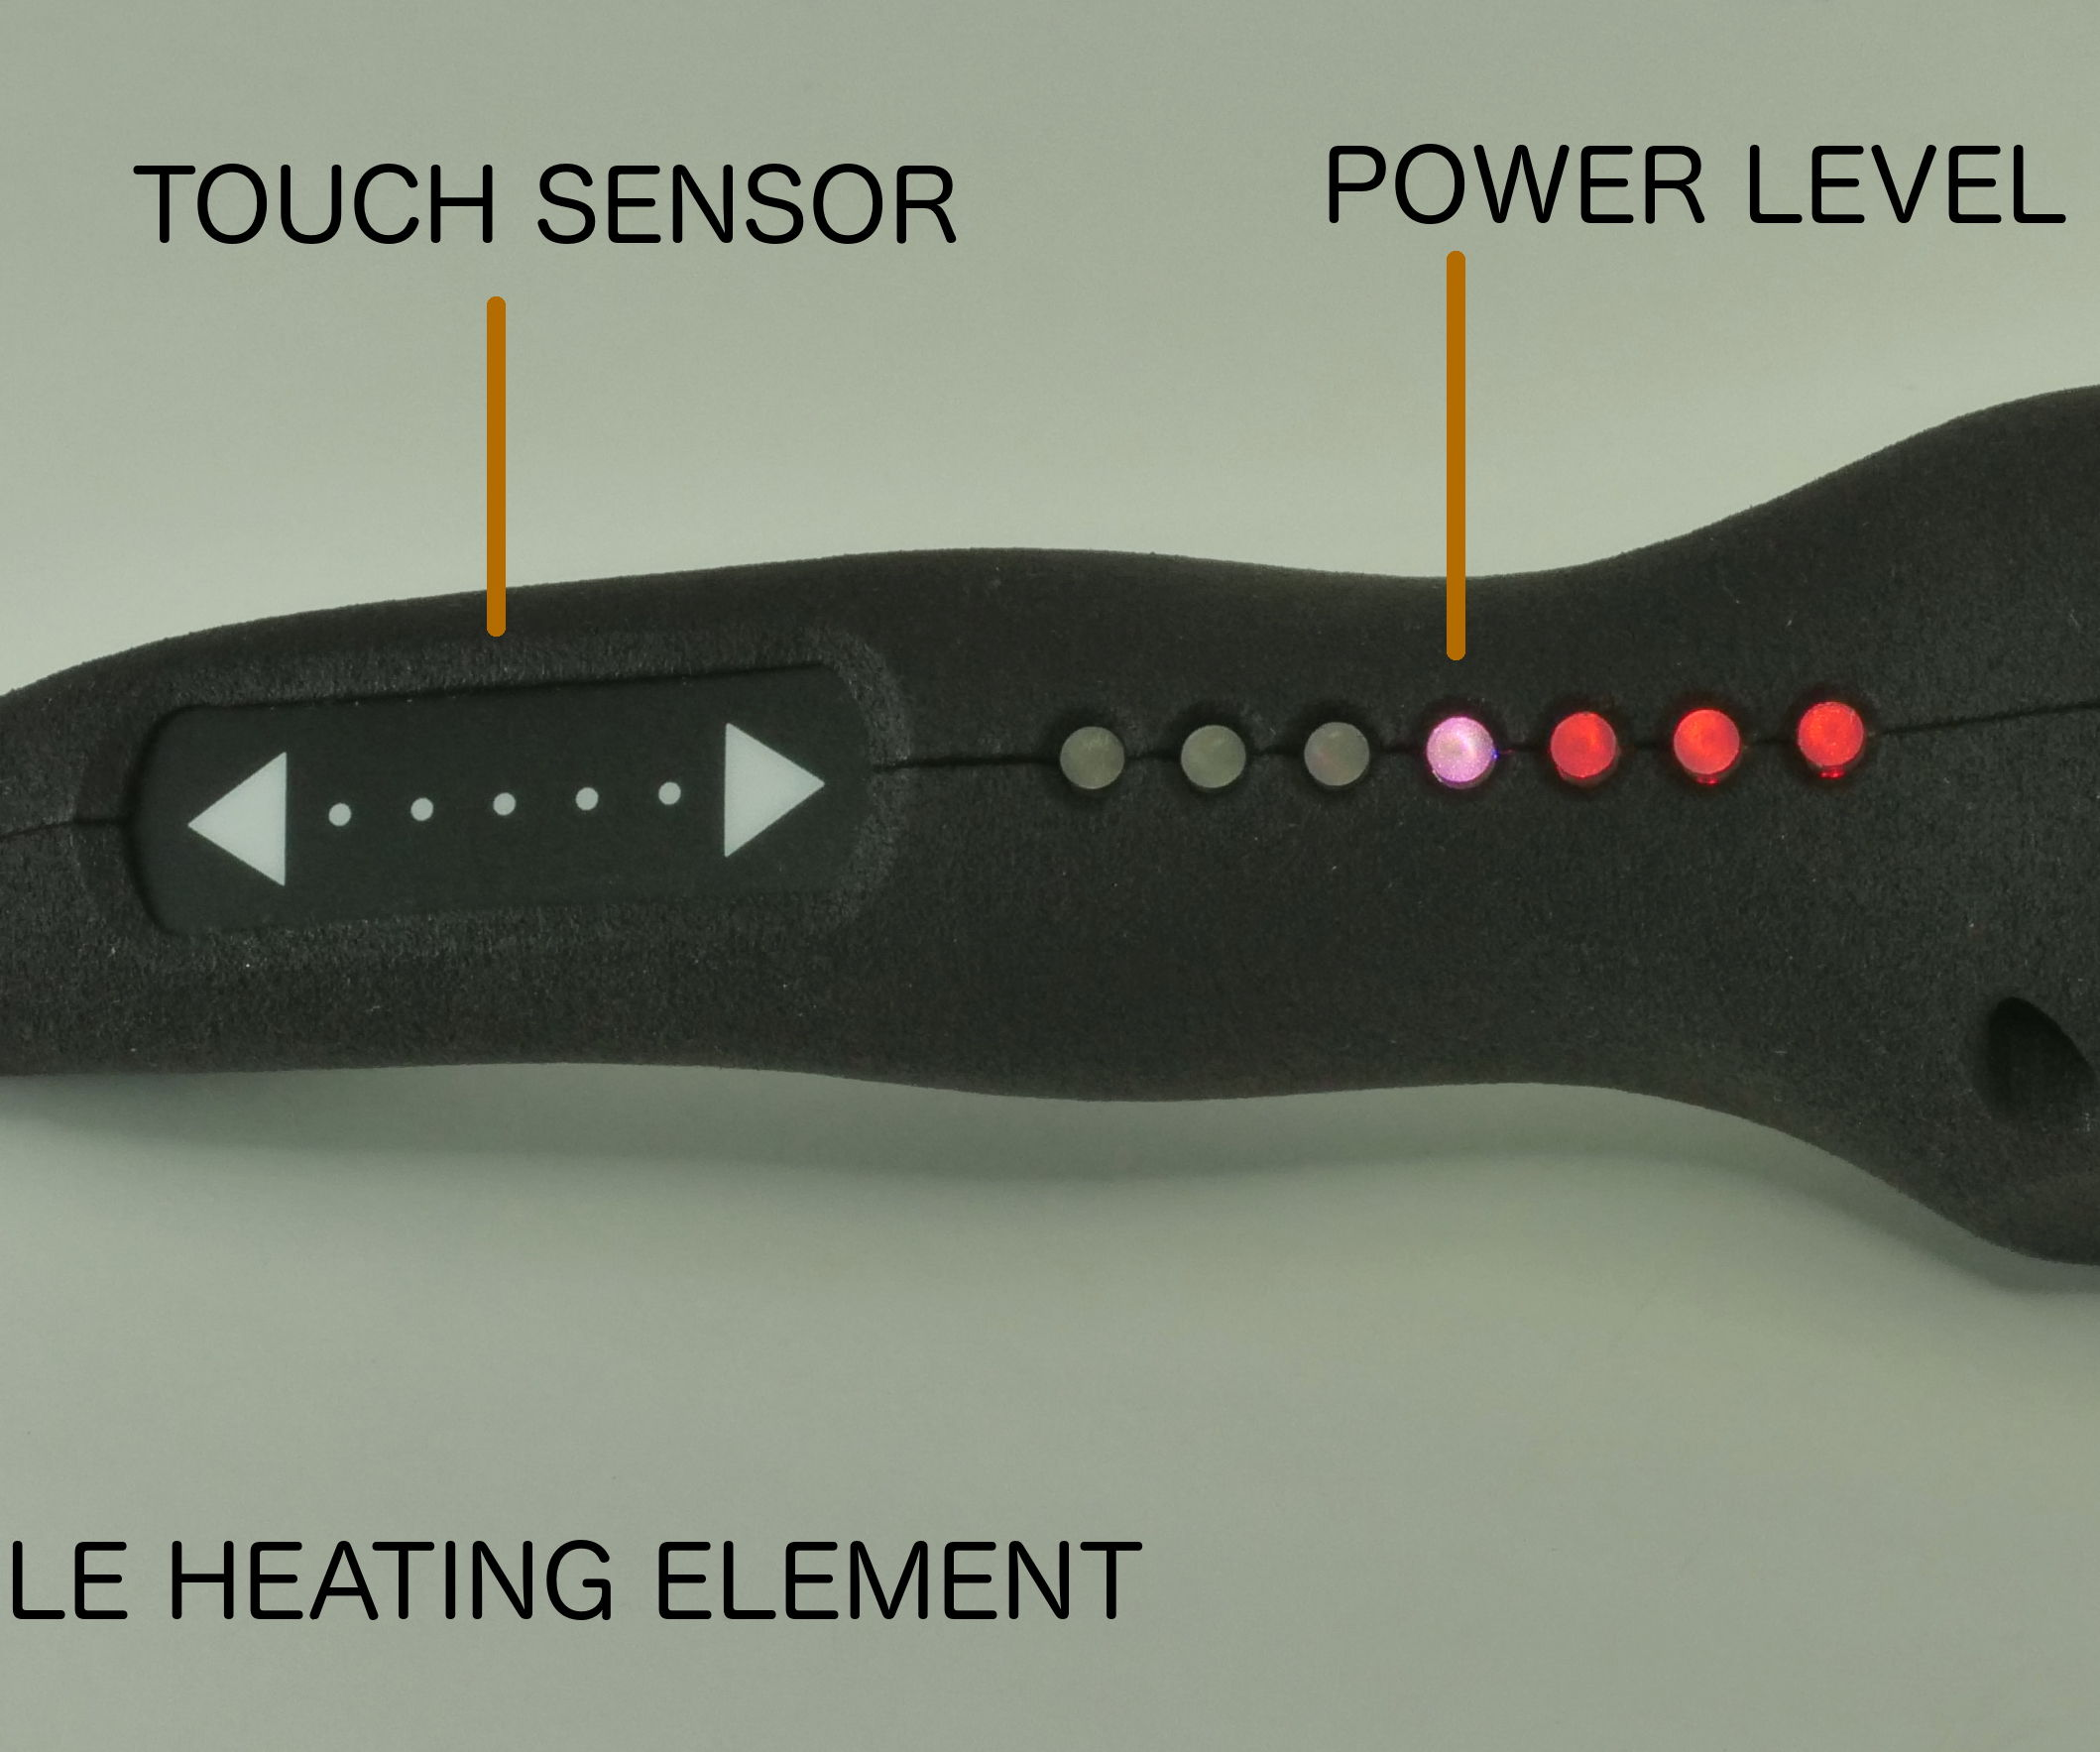 Solderdoodle Plus: Soldering Iron With Touch Control, LED Feedback, 3D Printed Case, and USB Rechargeable